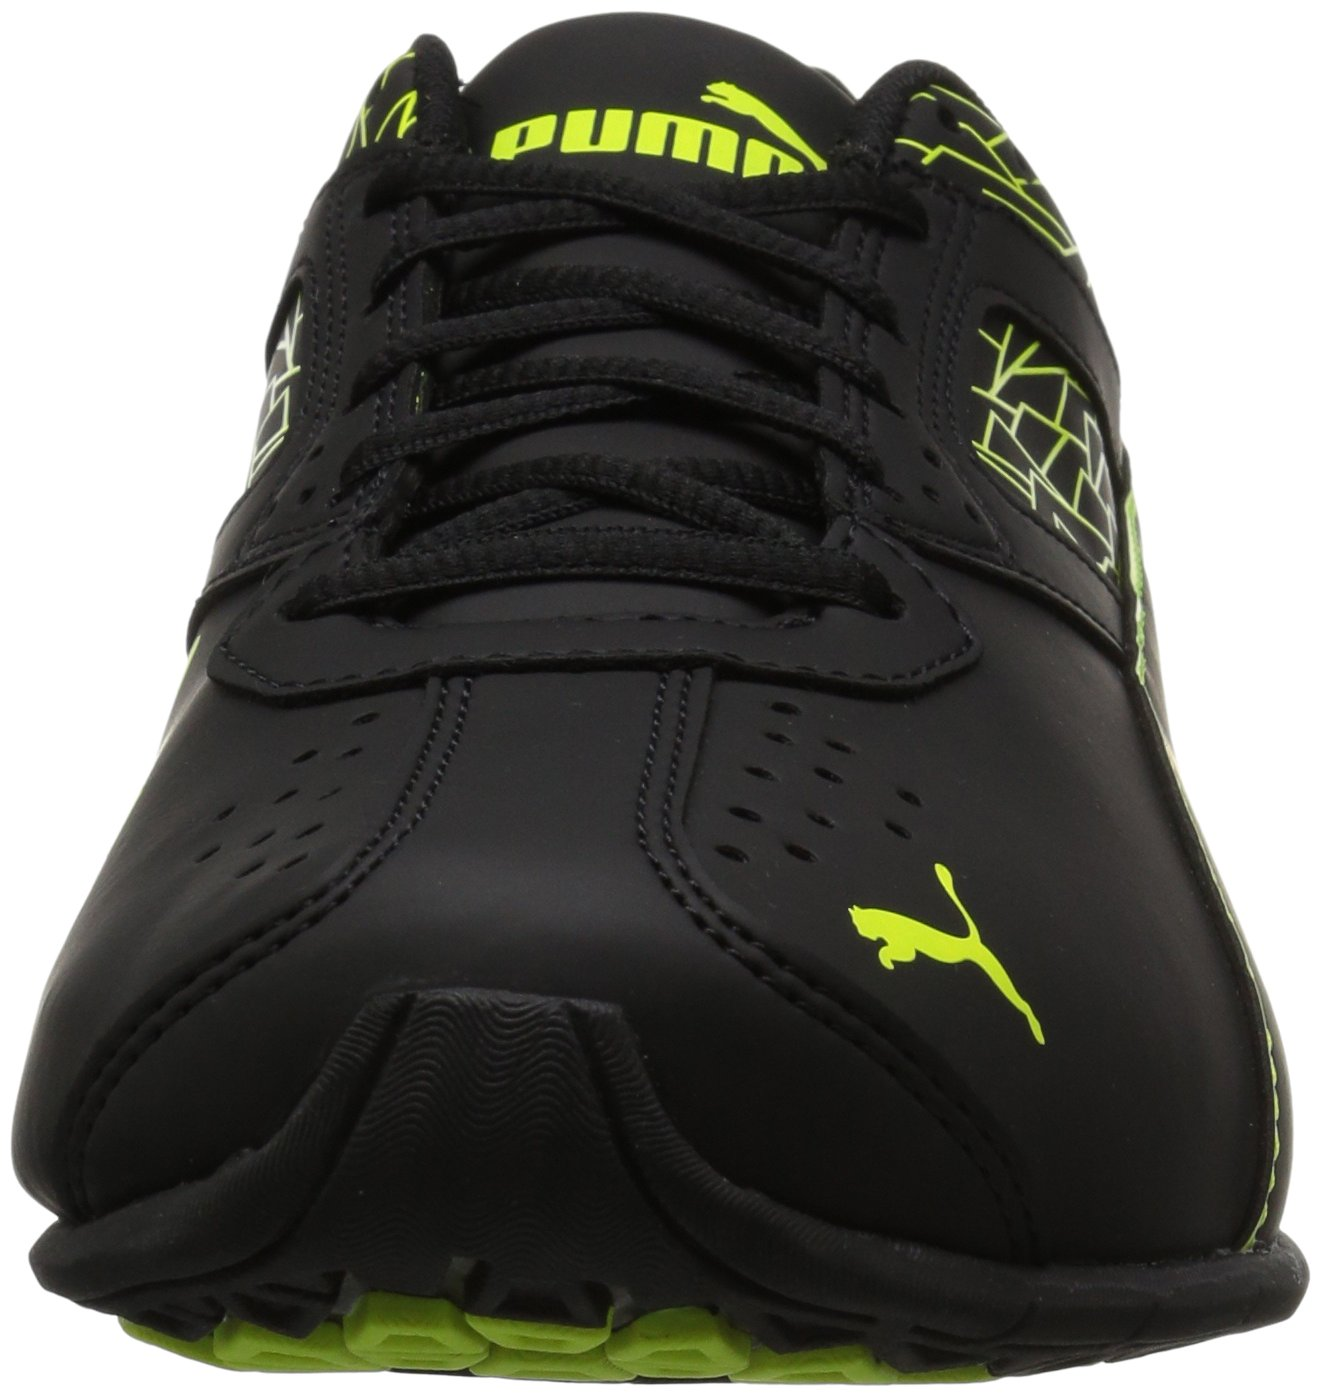 PUMA Men's Tazon 6 Fracture FM Cross-Trainer Shoe B071JH997K 10.5 M US|Puma Black-safety Yellow